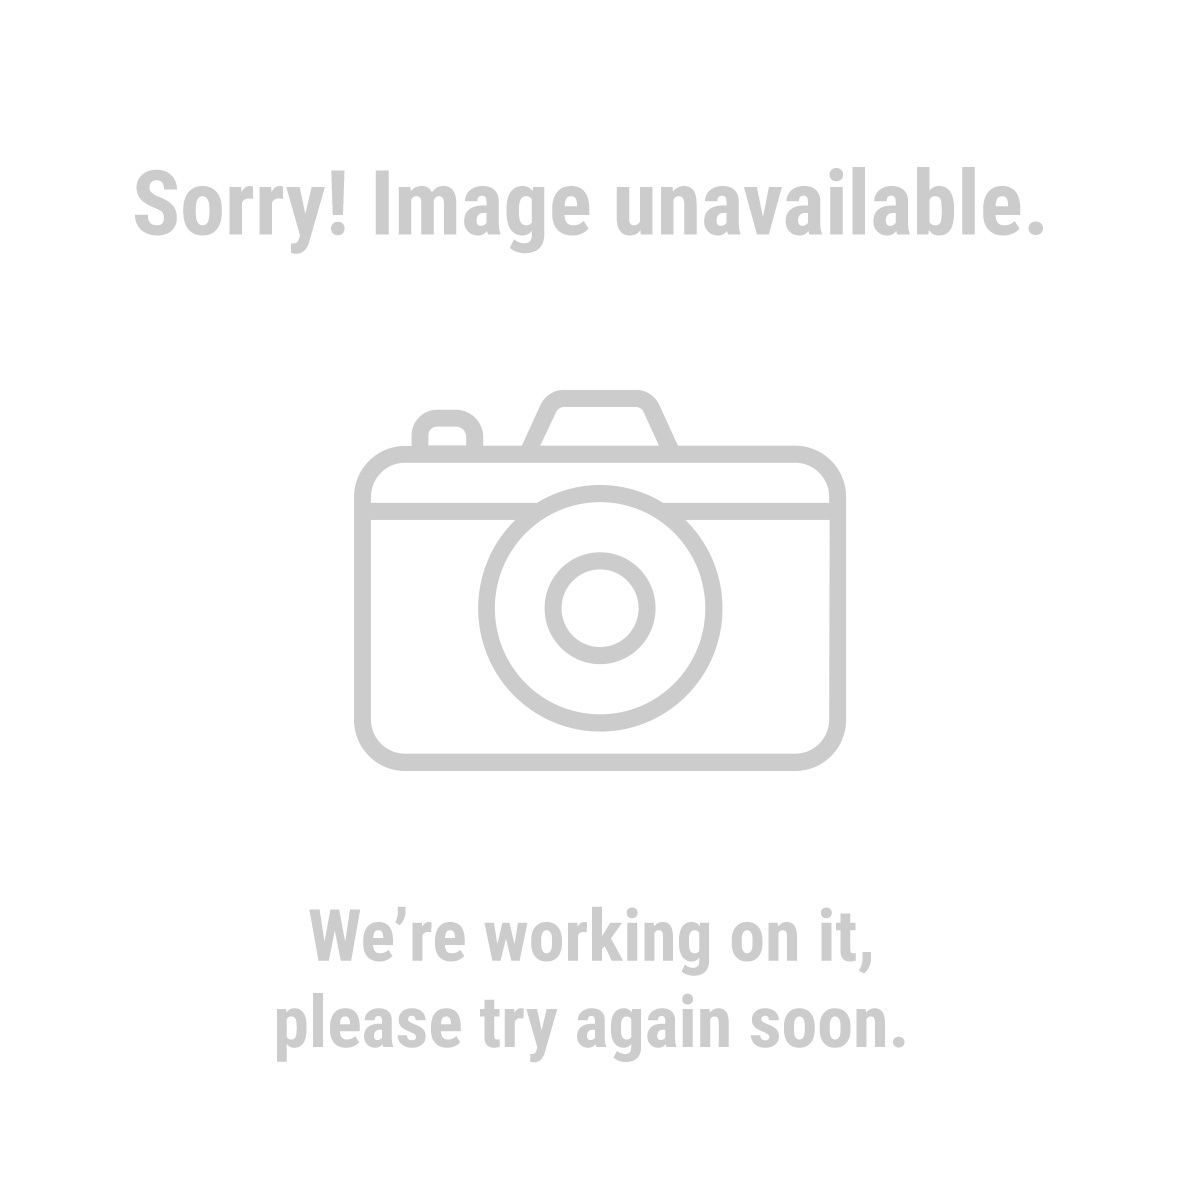 harbor freight 1 2 electric impact wrench review. Black Bedroom Furniture Sets. Home Design Ideas